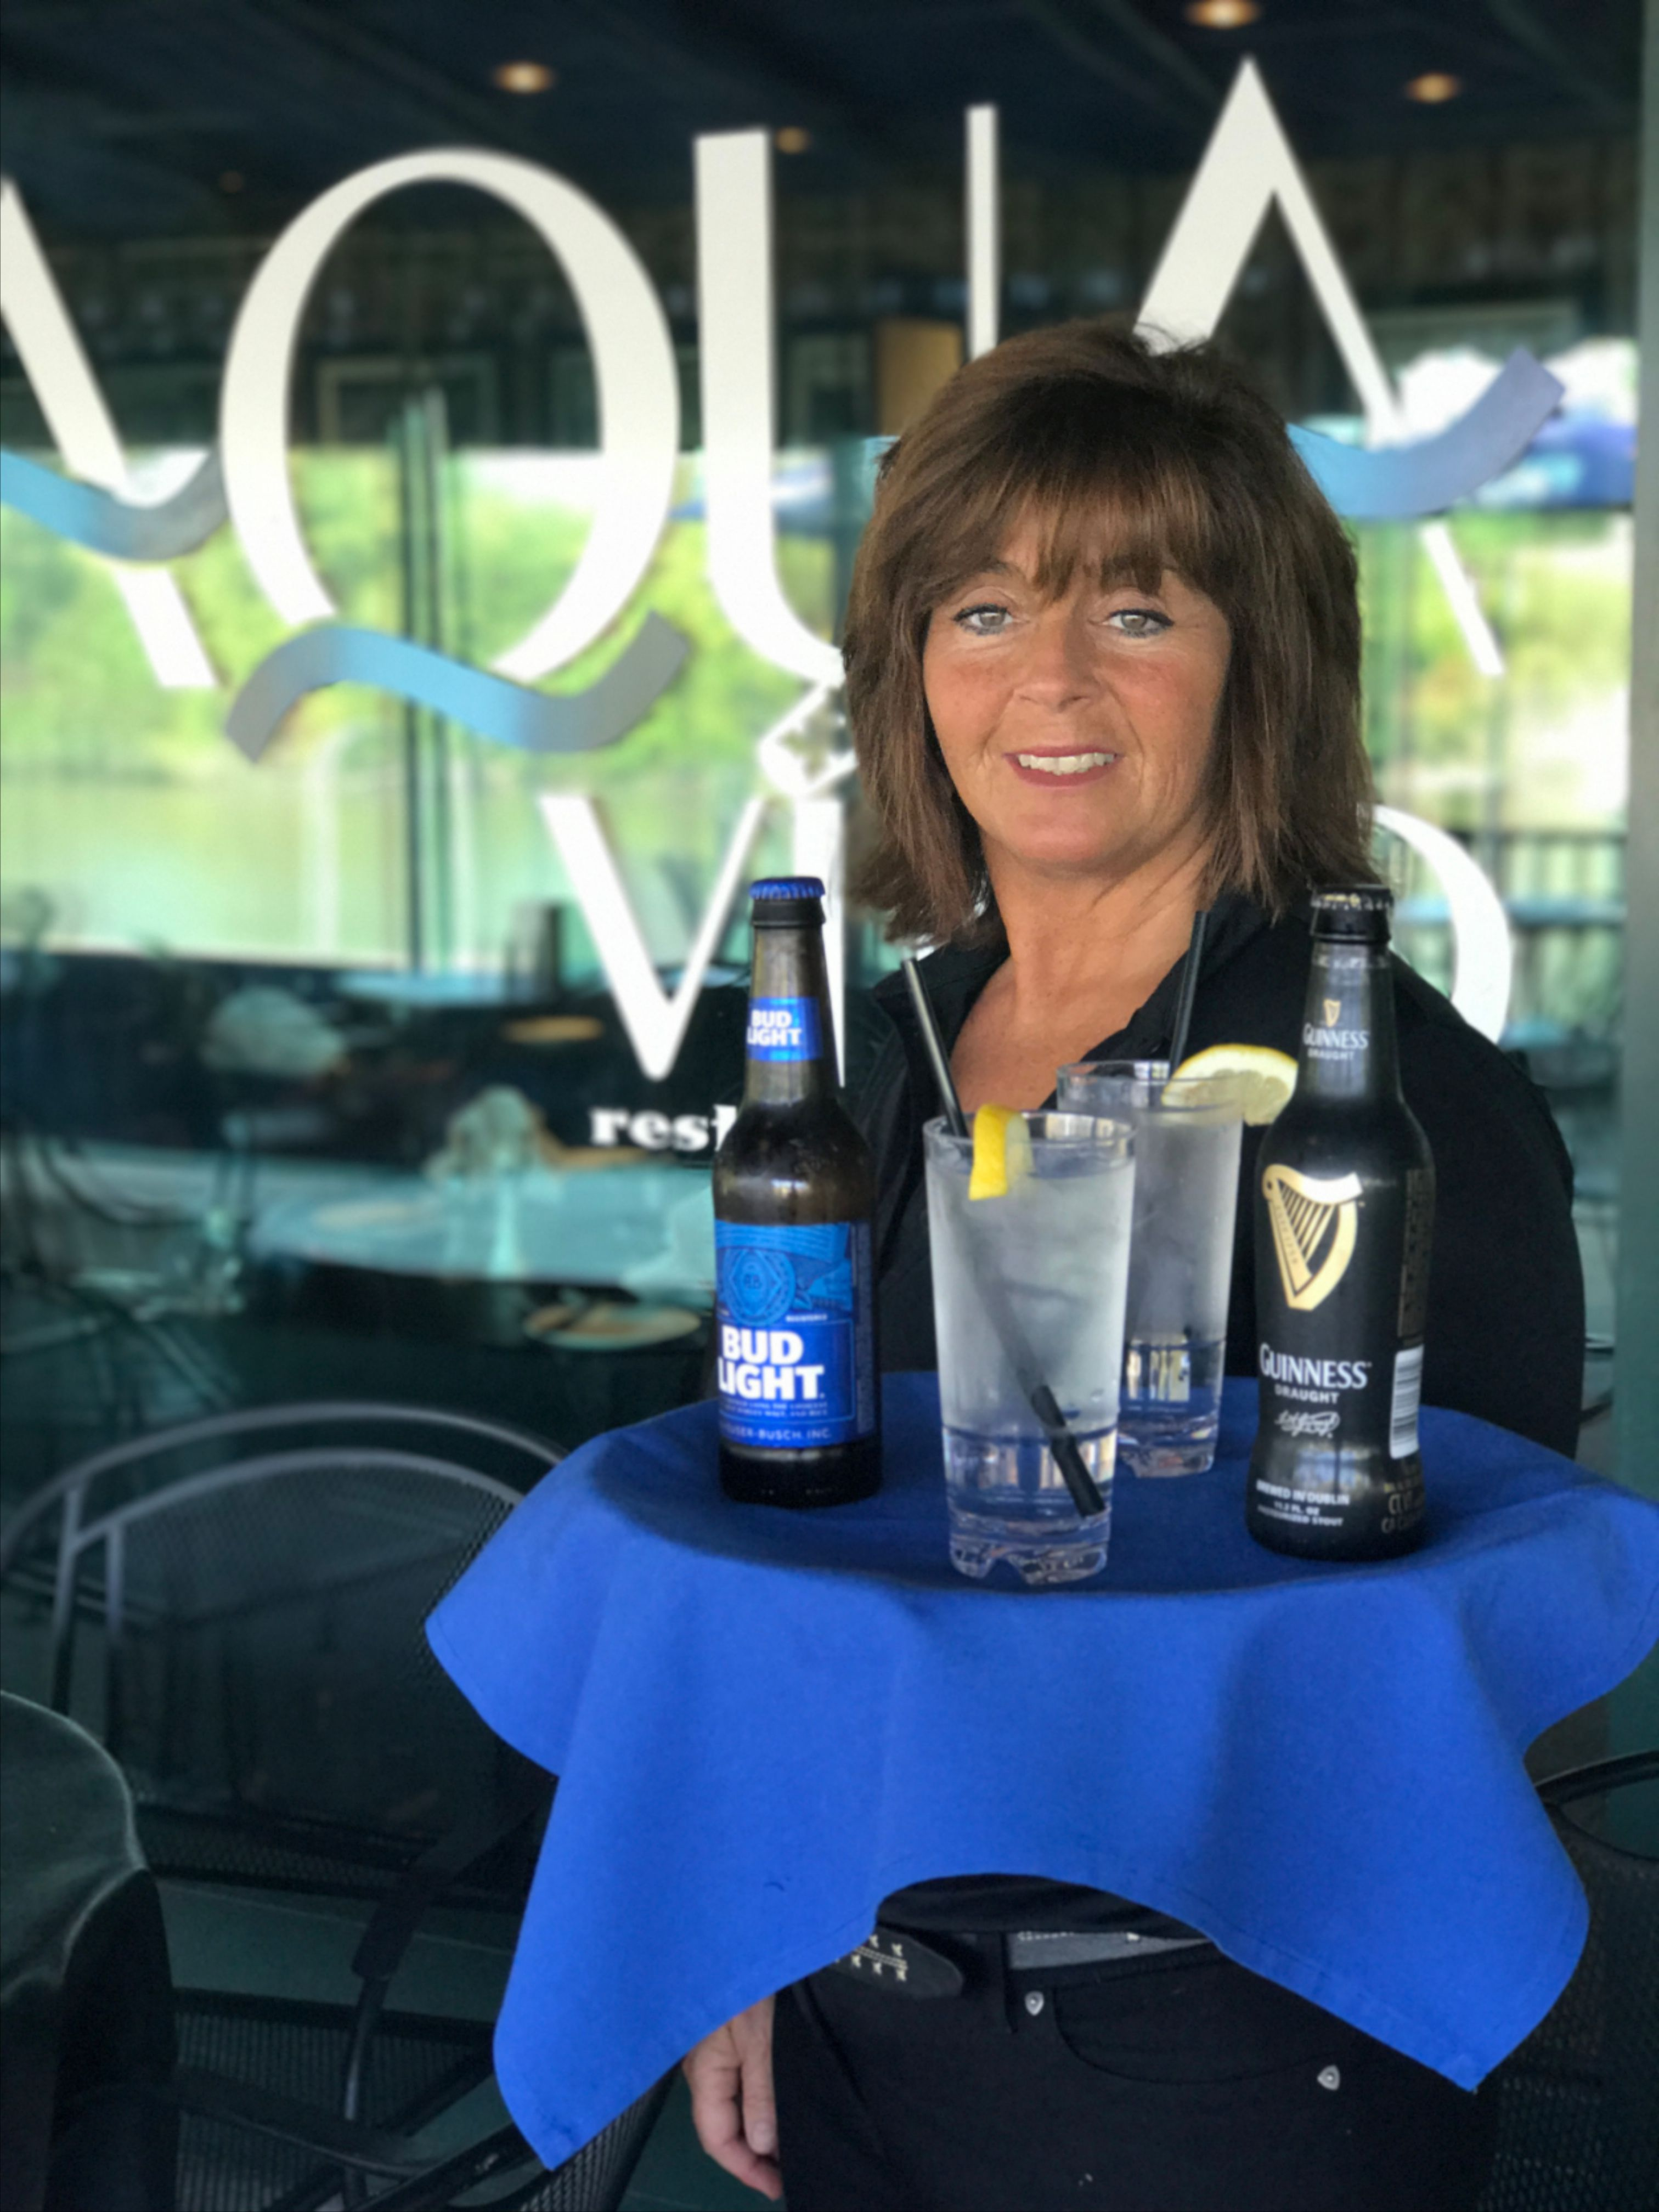 trish holding tray of beer bottles and glasses filled with water